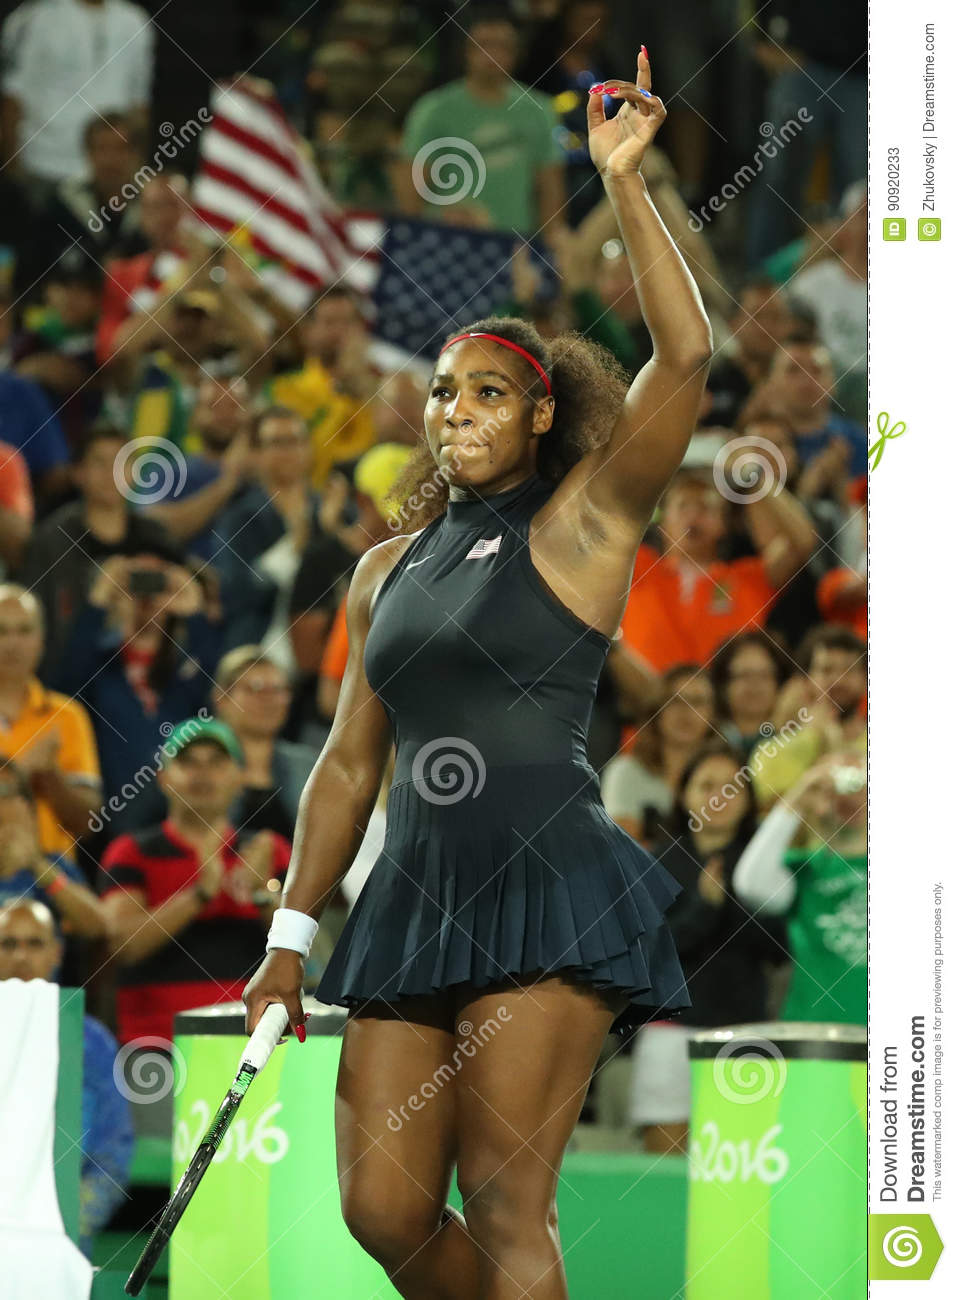 match & flirt with singles in serena Tiger woods sits in the player's box of serena williams during the women's singles final match between serena williams of the us and angelique kerber of germany at.